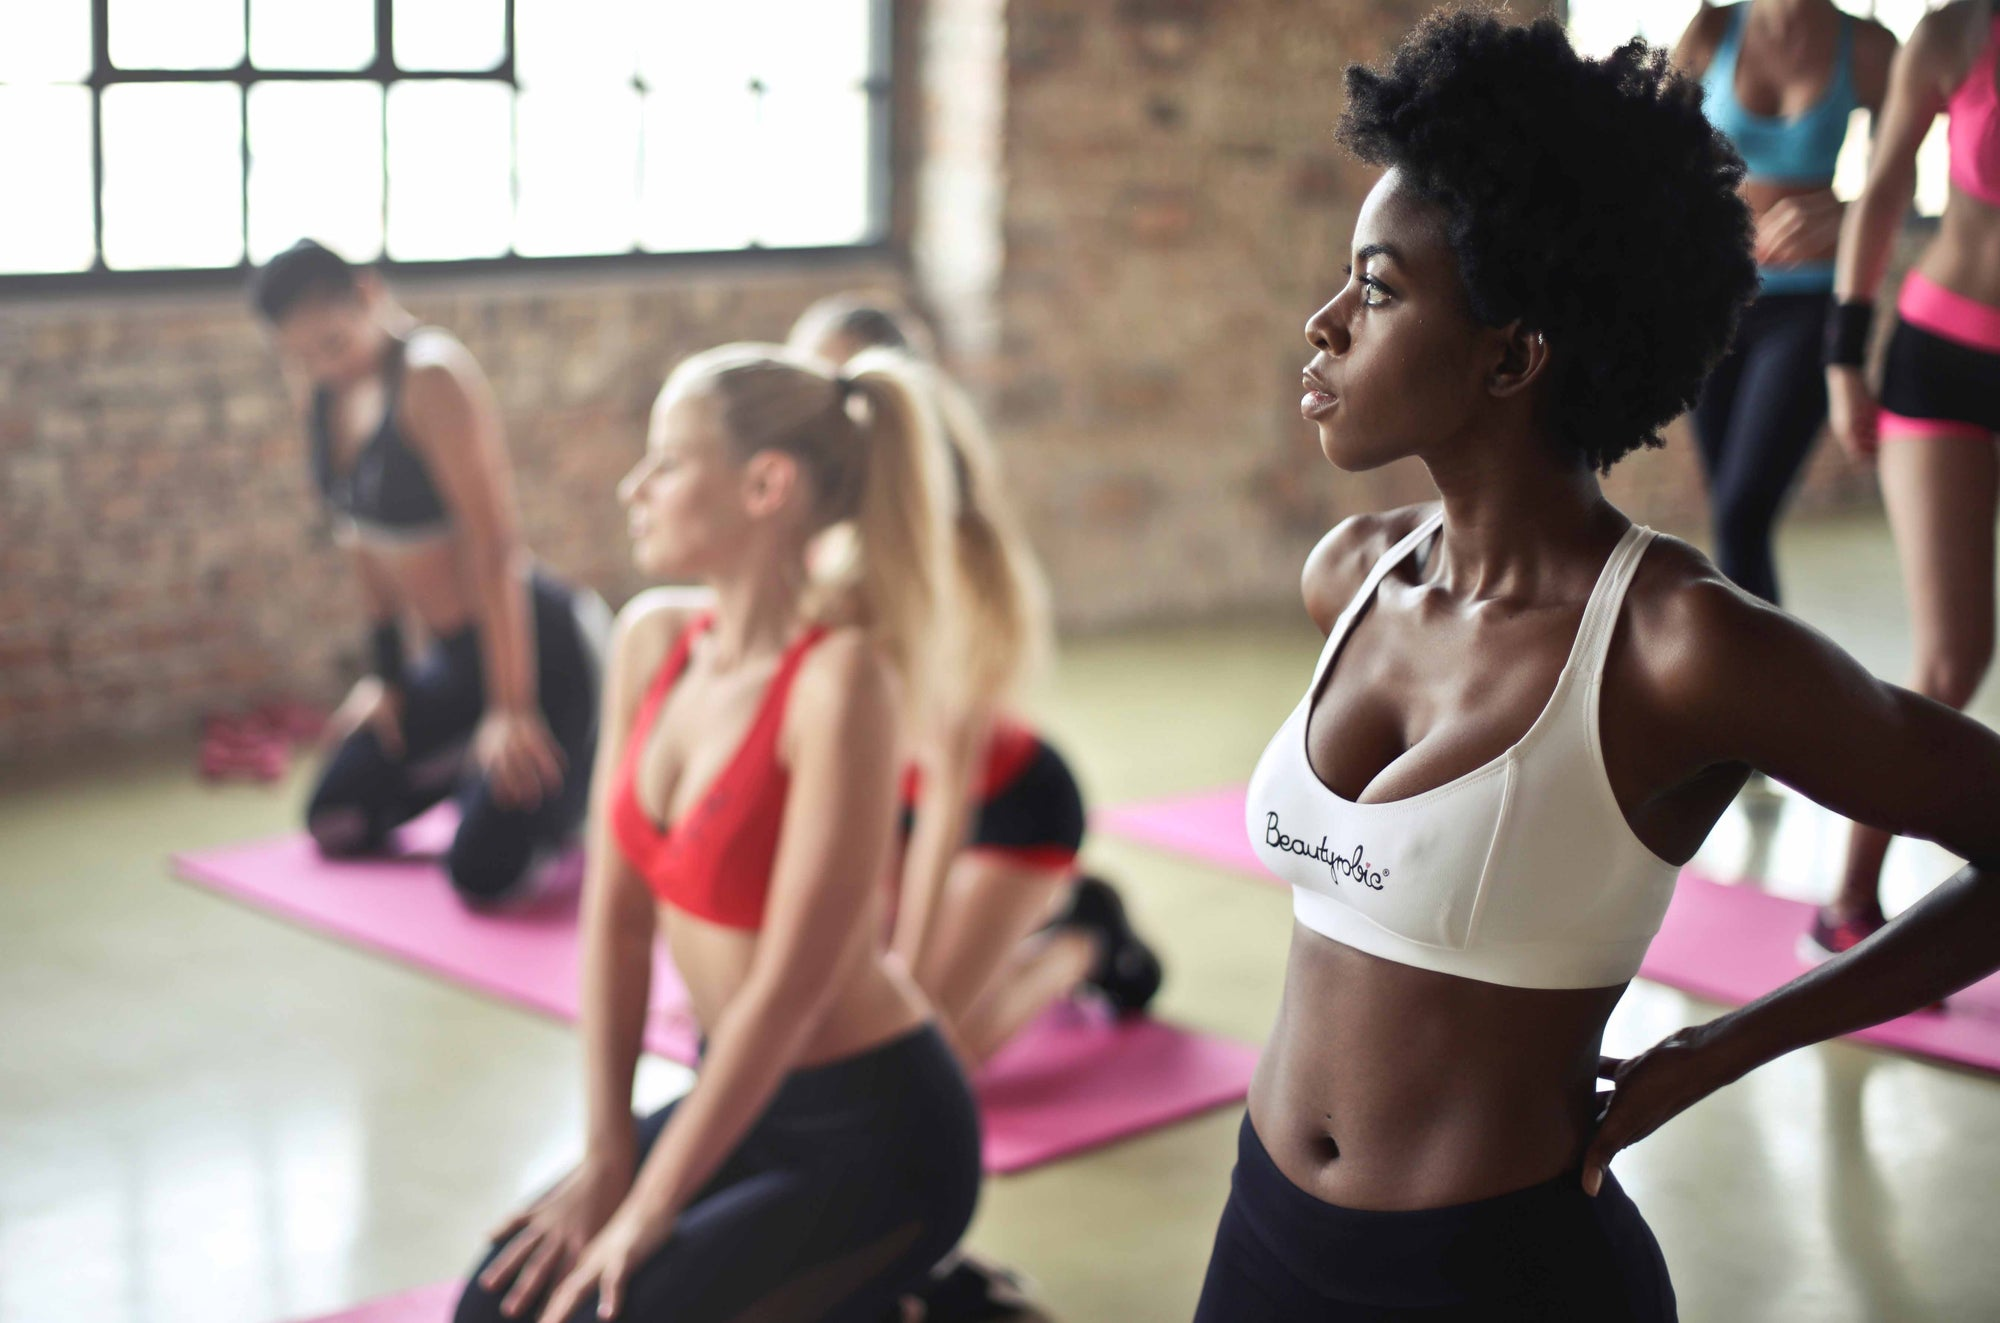 Women in a gym class sitting on yoga mats